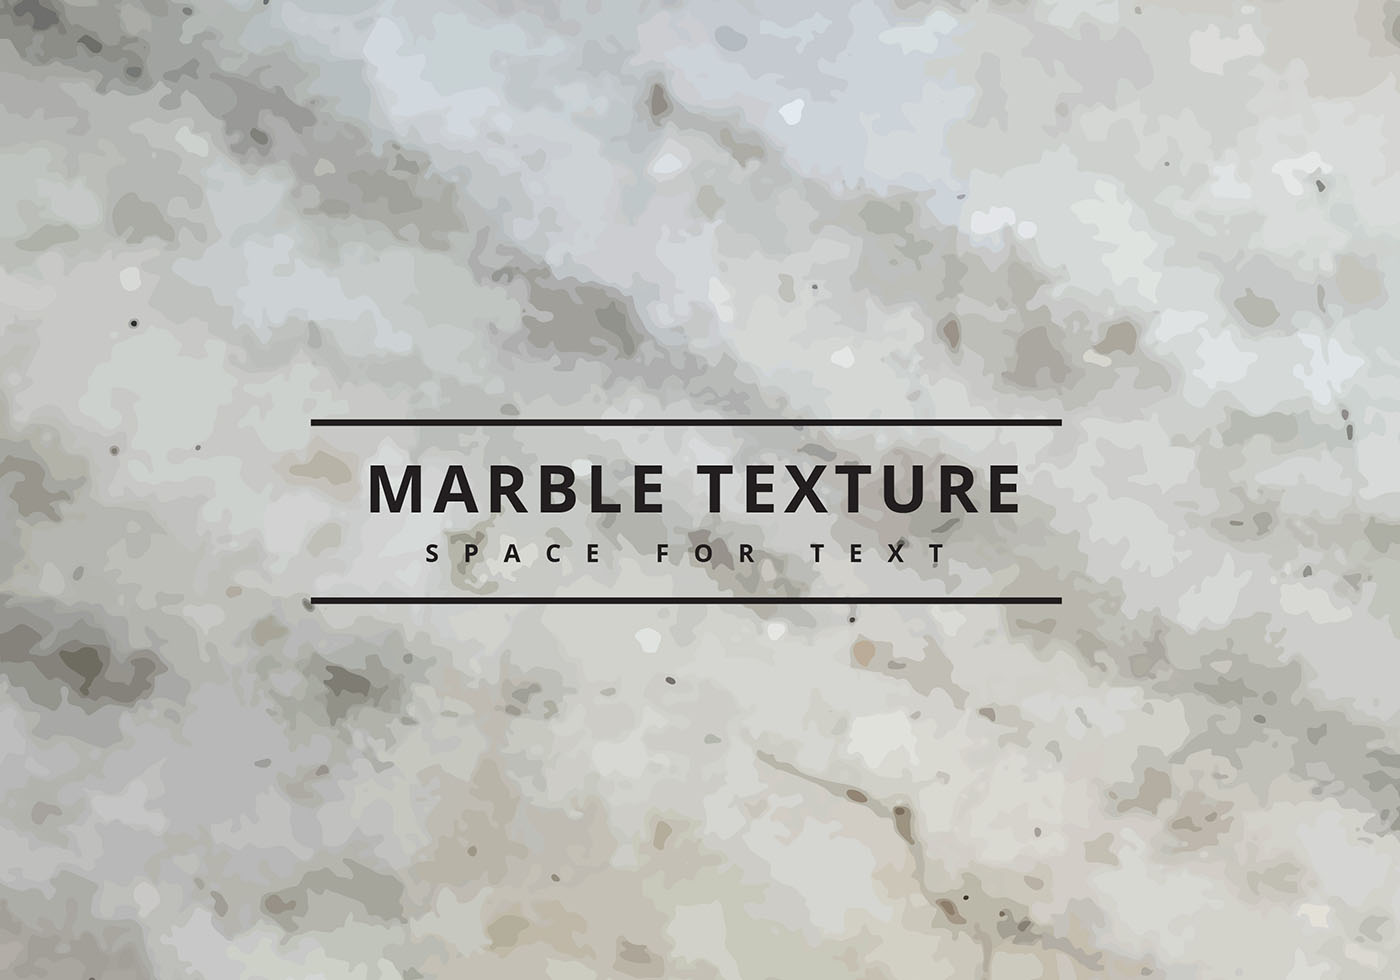 Marble Texture Vector Background Download Free Vector